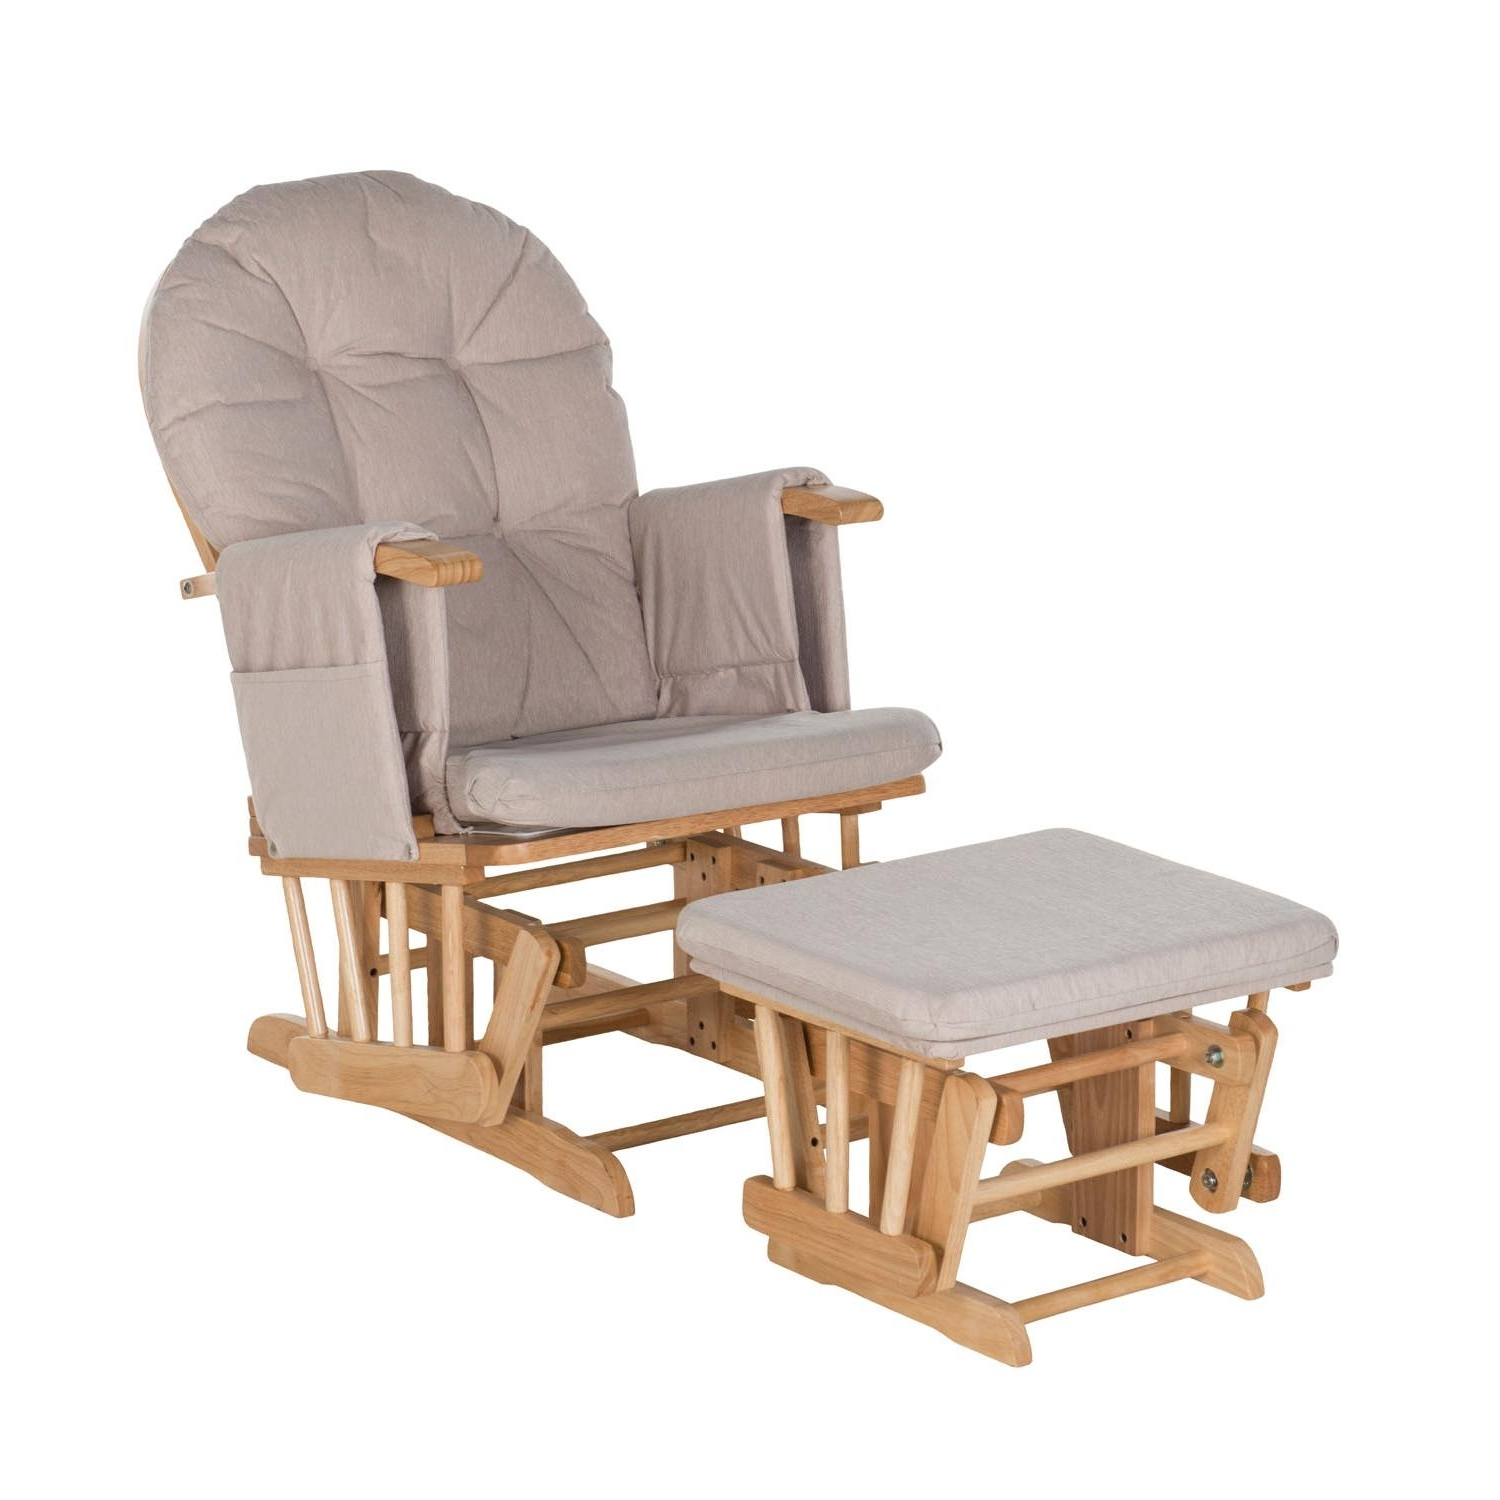 Maternity Rocking Chair – 28 Images – Supremo Bambino Nursing Glider Regarding Most Recent Rocking Chairs For Nursing (View 9 of 20)